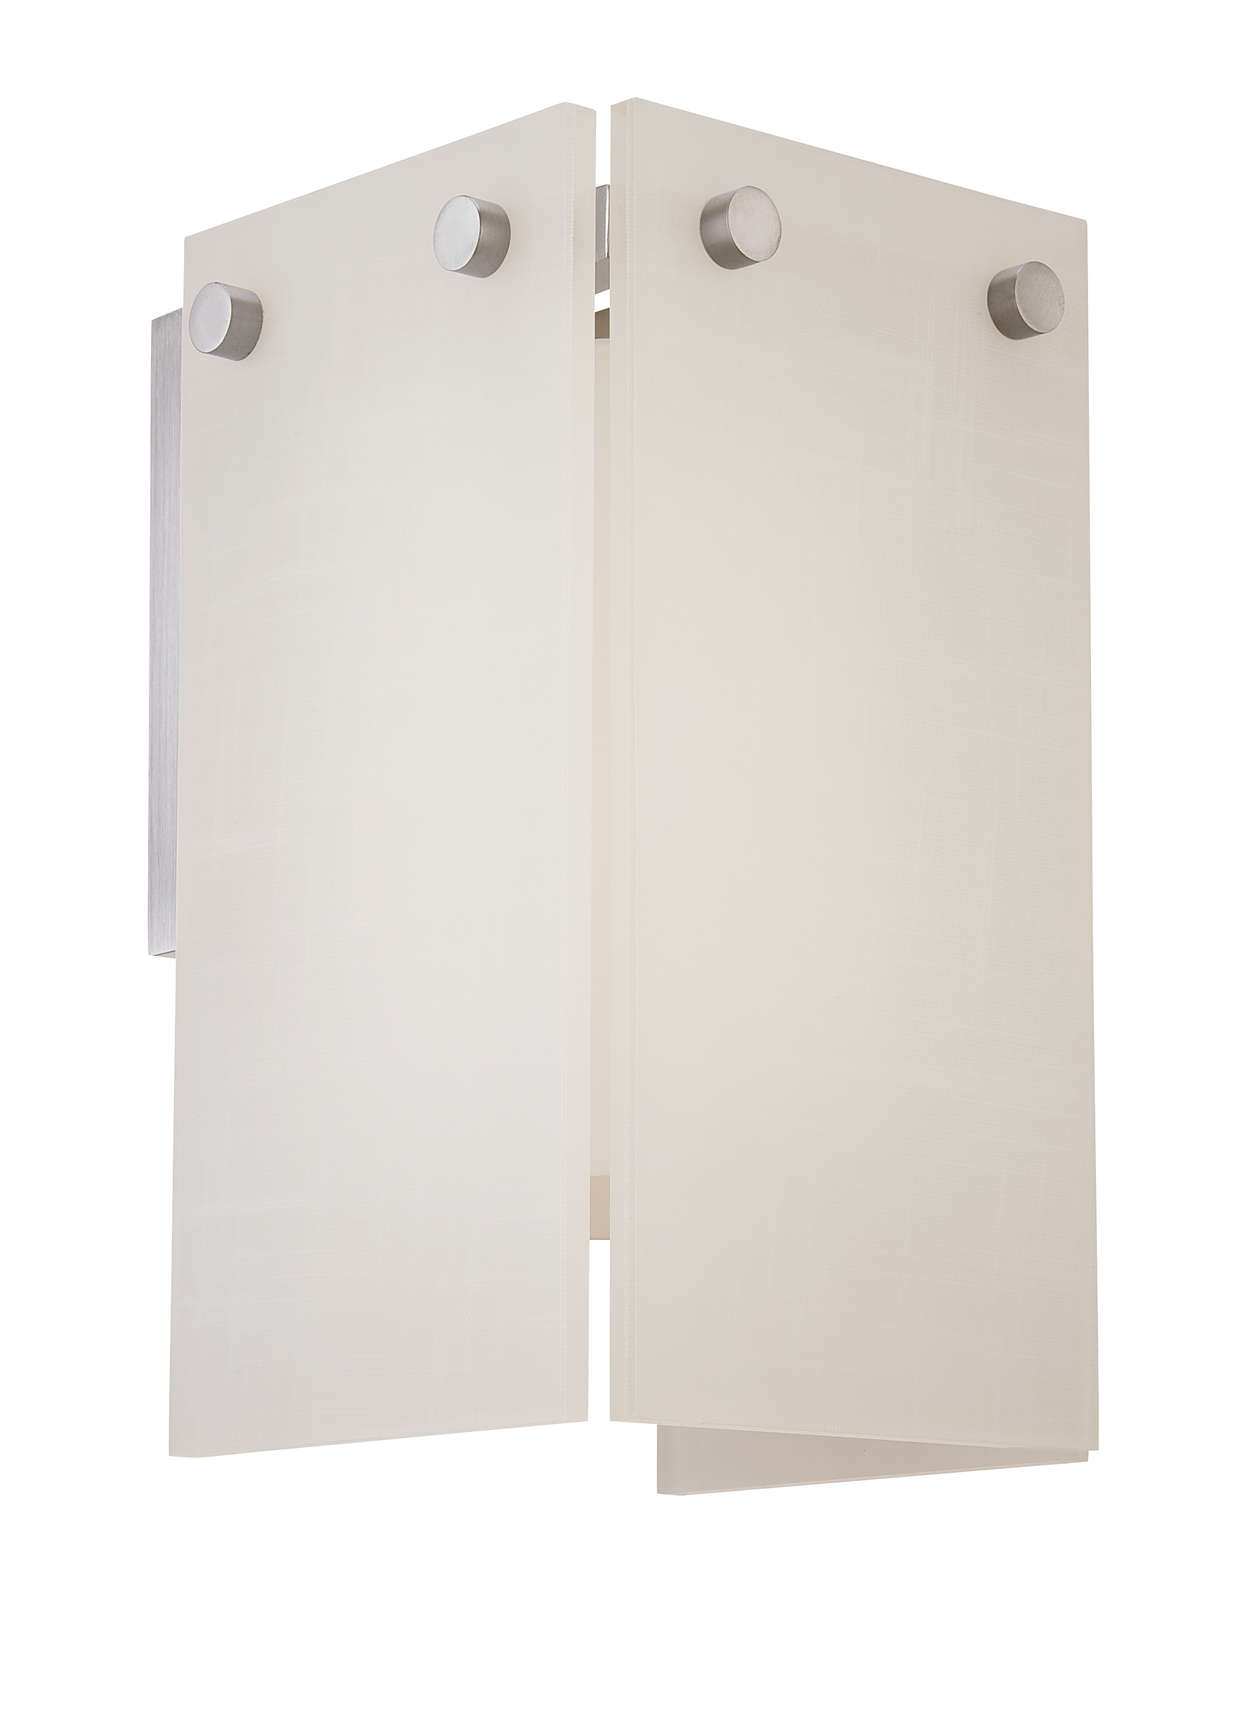 Ecoframe 1-light wall sconce, Satin Nickel finish